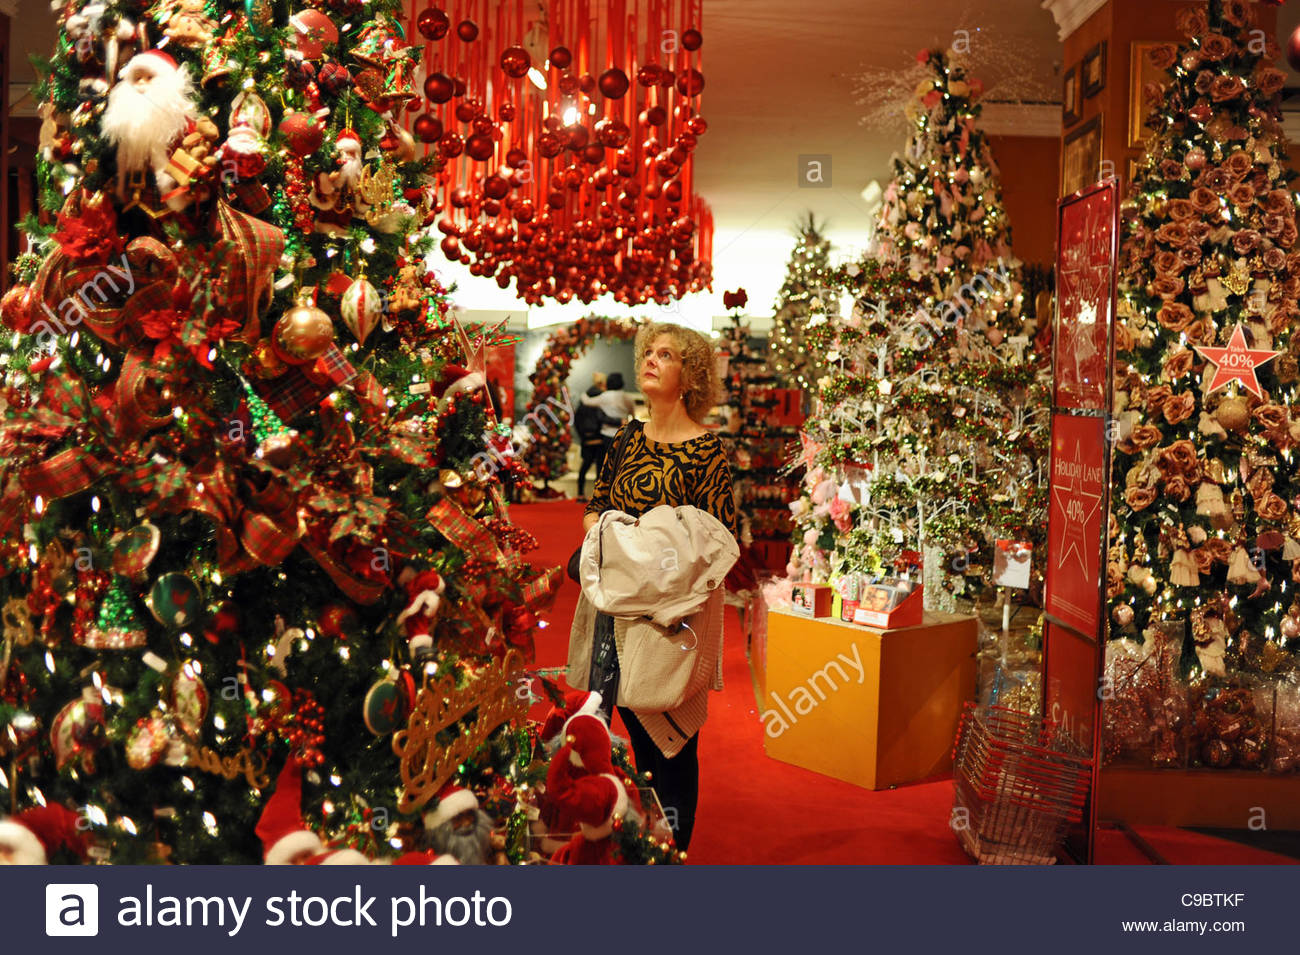 Christmas shopping at Macy's department store in Midtown Manhattan ...